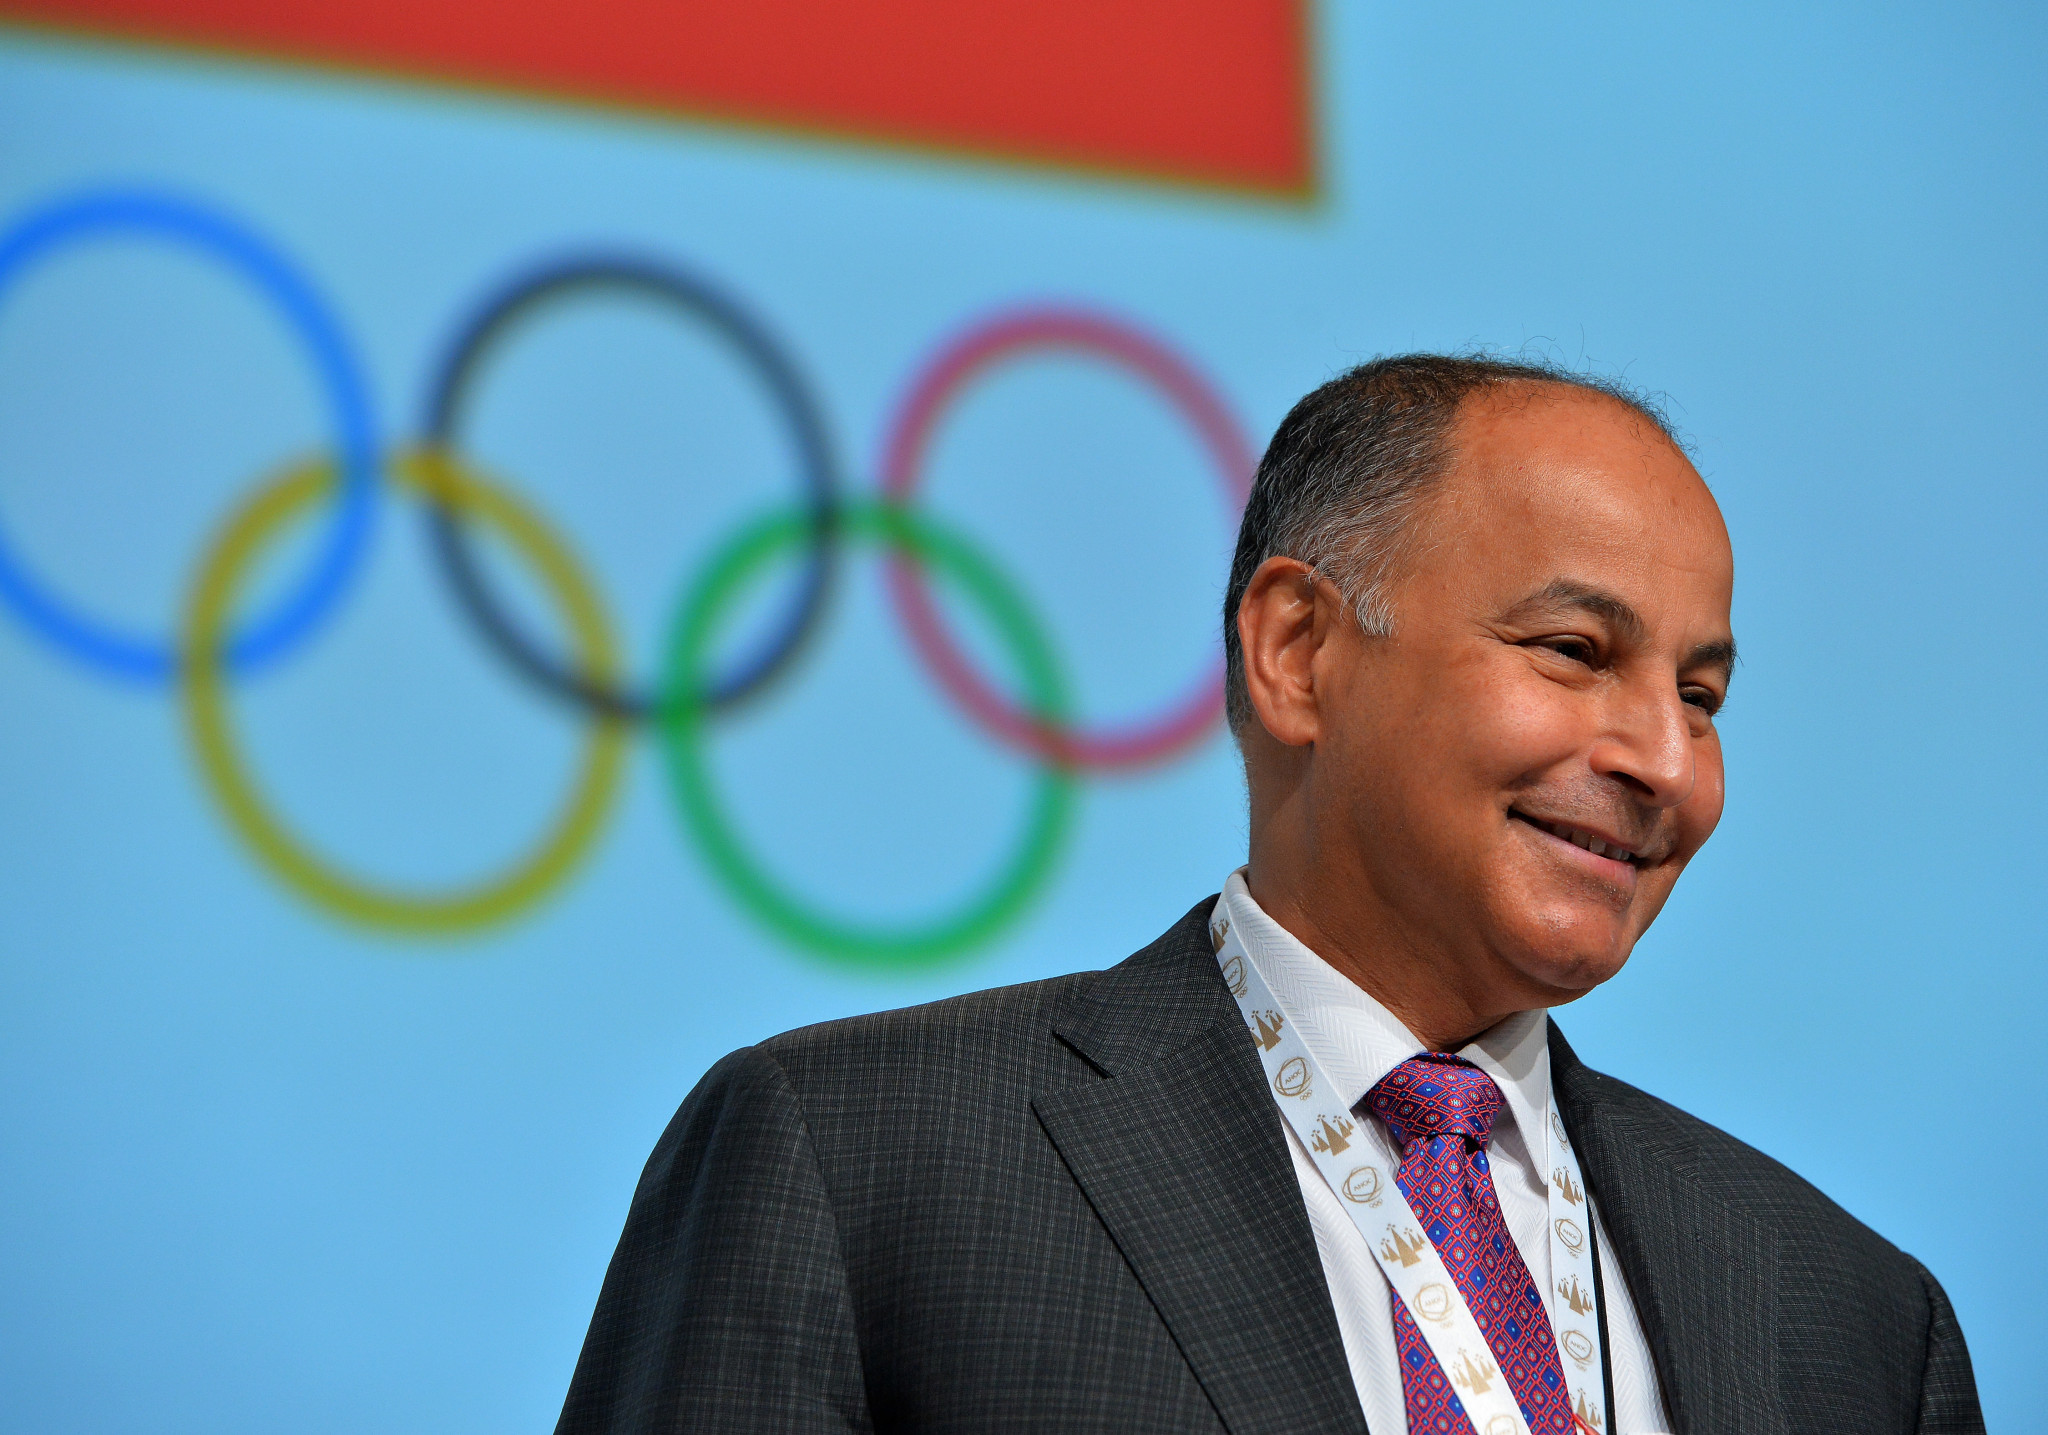 Husain Al-Musallam has served as director general of the Olympic Council of Asia since 2005 ©Getty Images